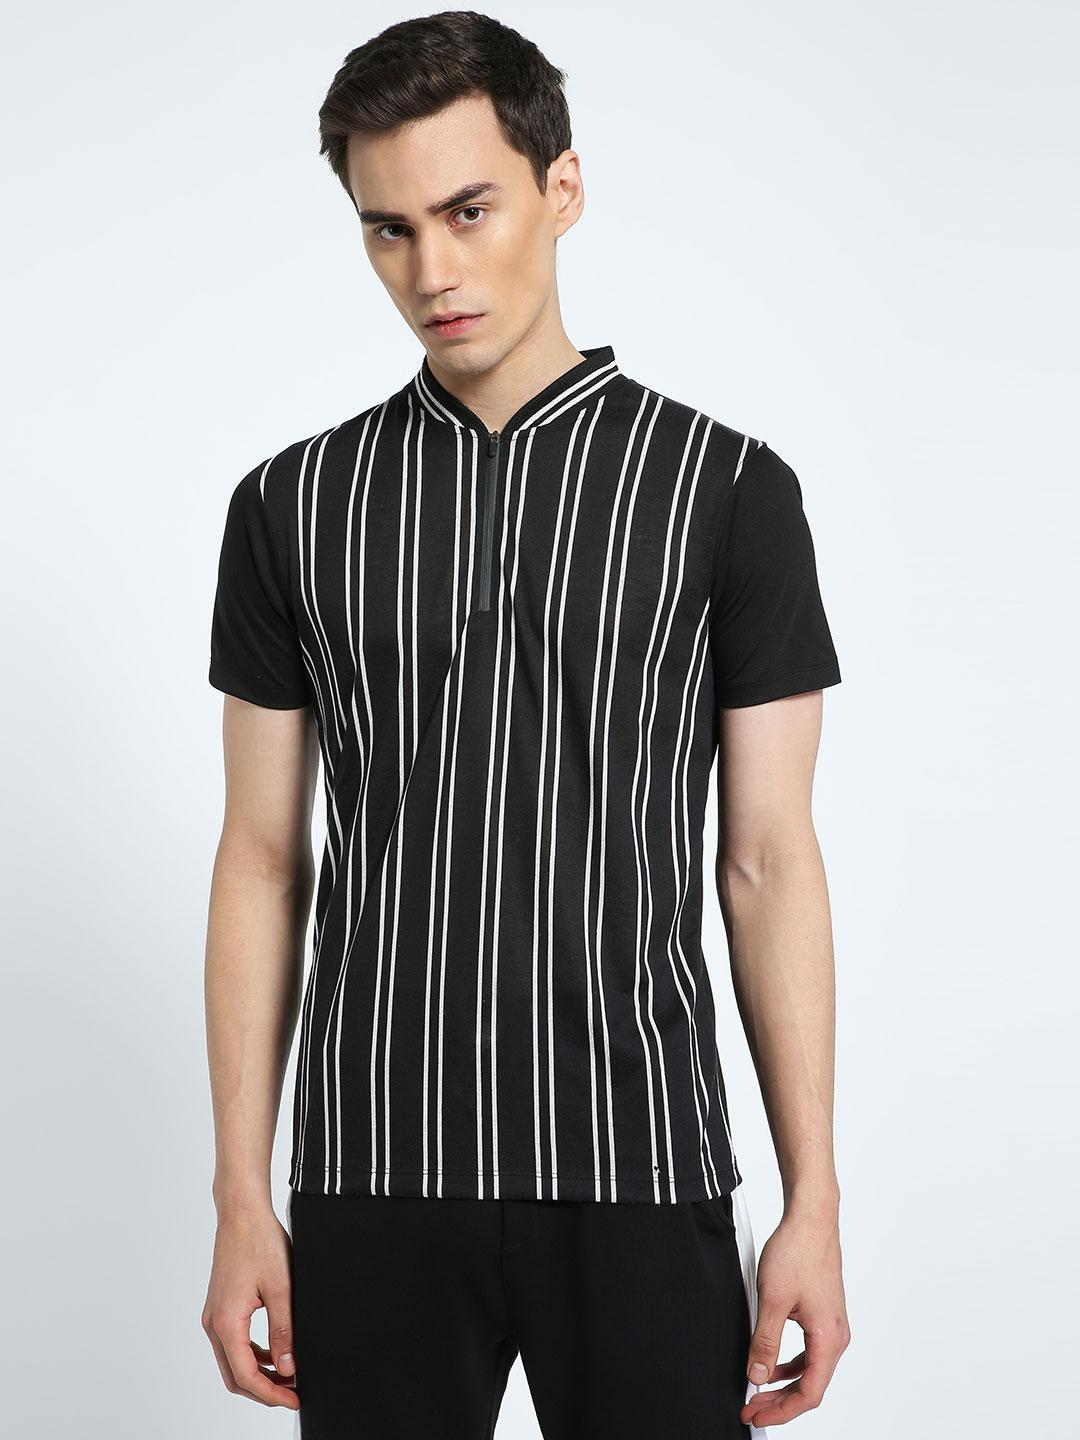 CHELSEA KING Multi Vertical Stripe Baseball Polo Shirt 1